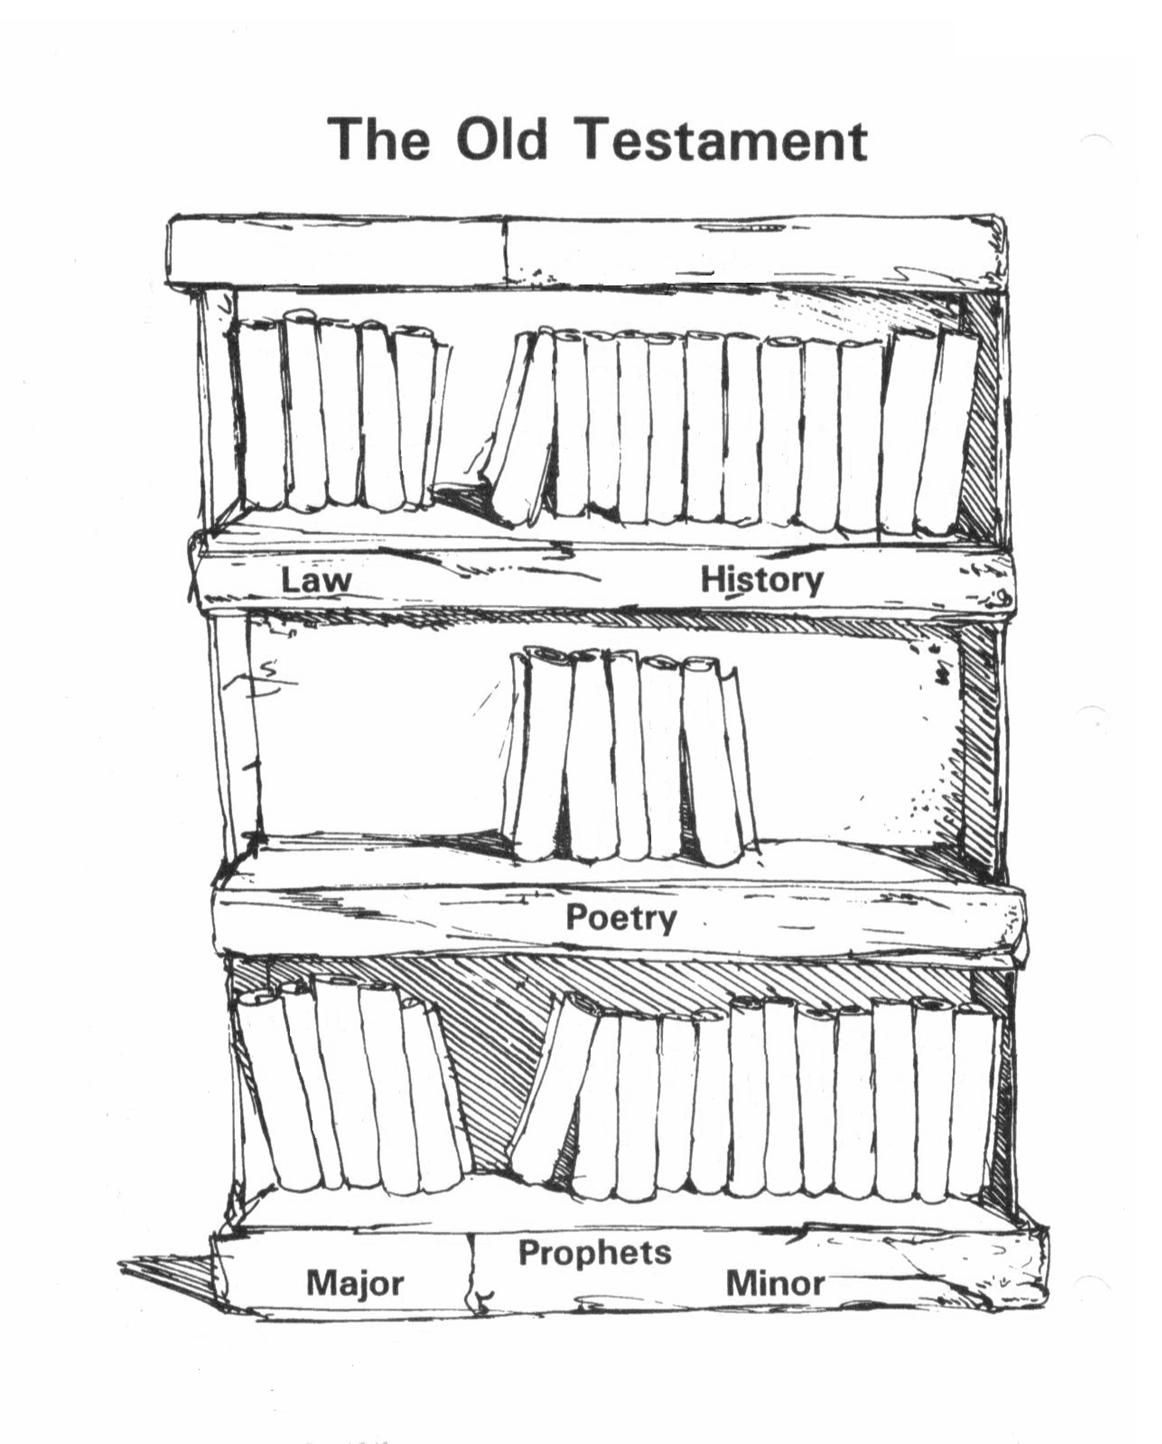 Use This Printout To Assist With Learning The Books Of The